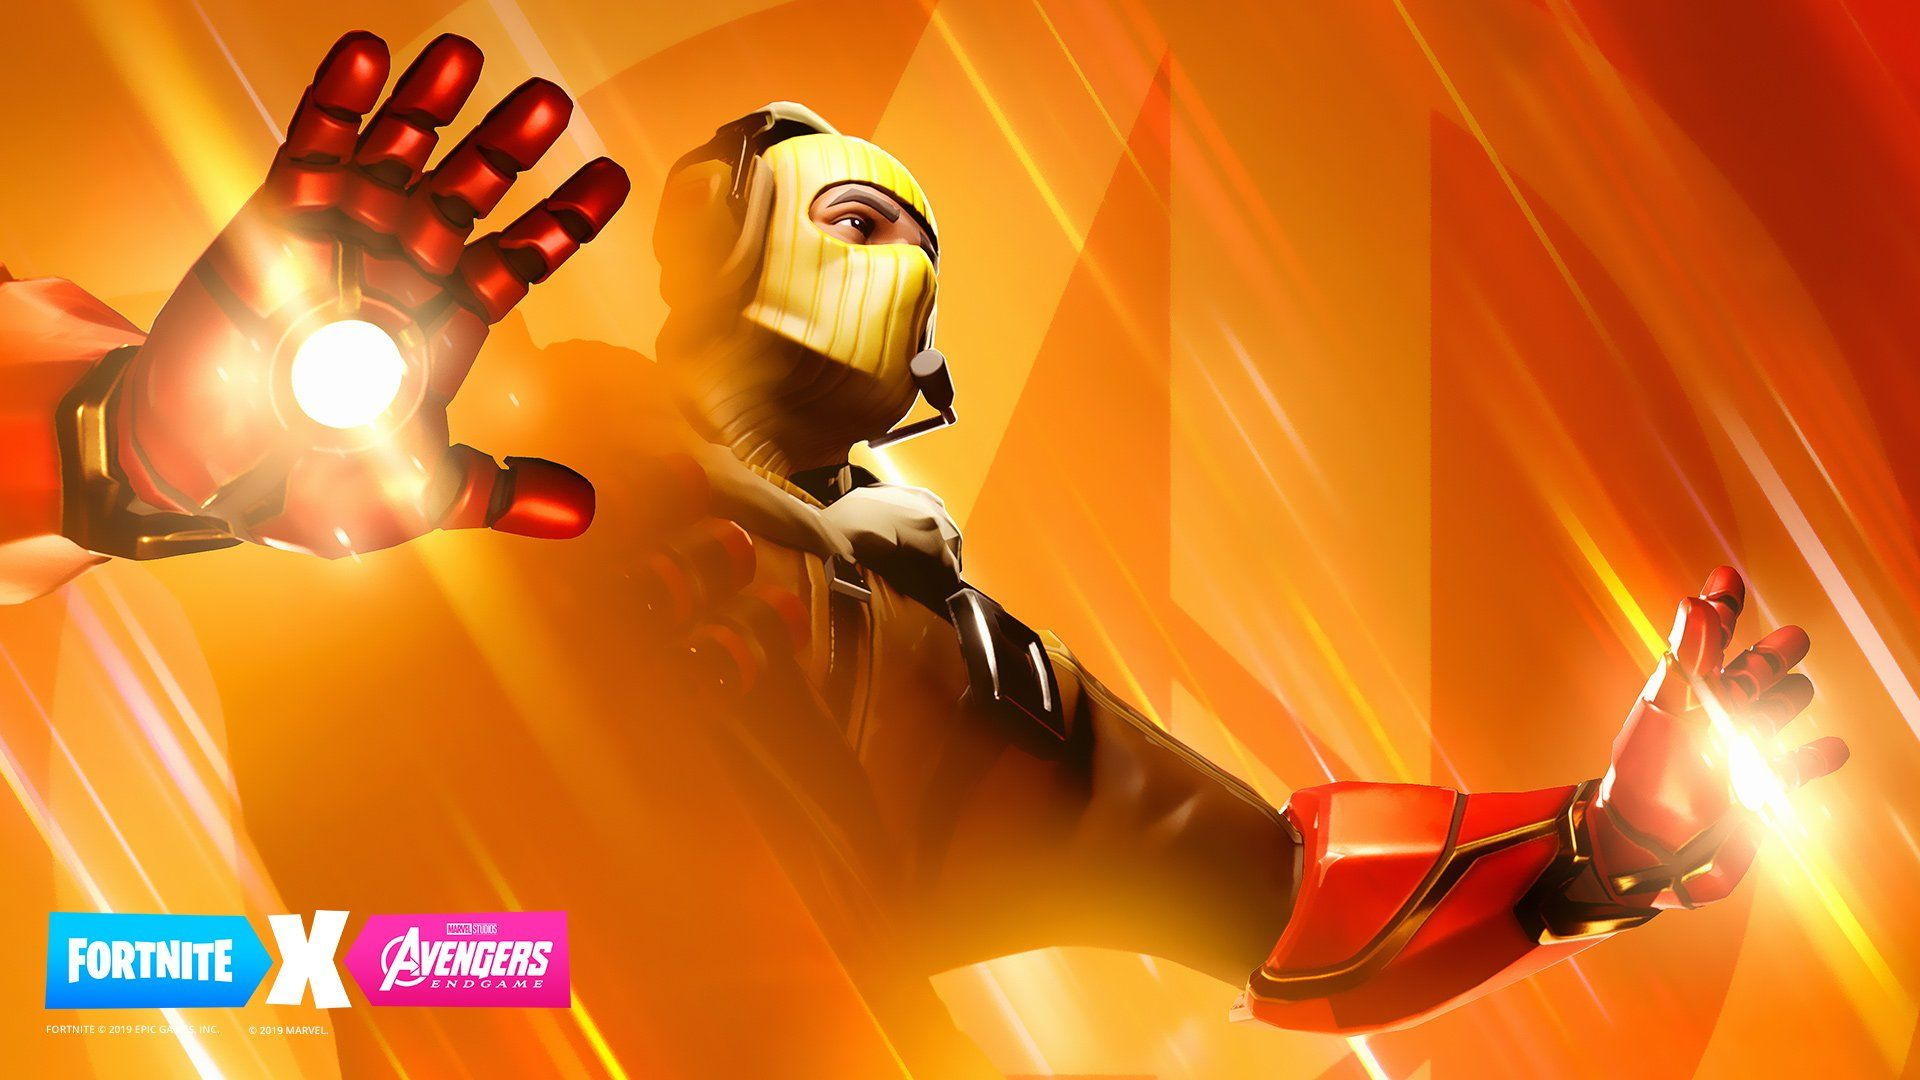 Fortnite Client fortnite' update 8.50 adds endgame mode & challenges - patch